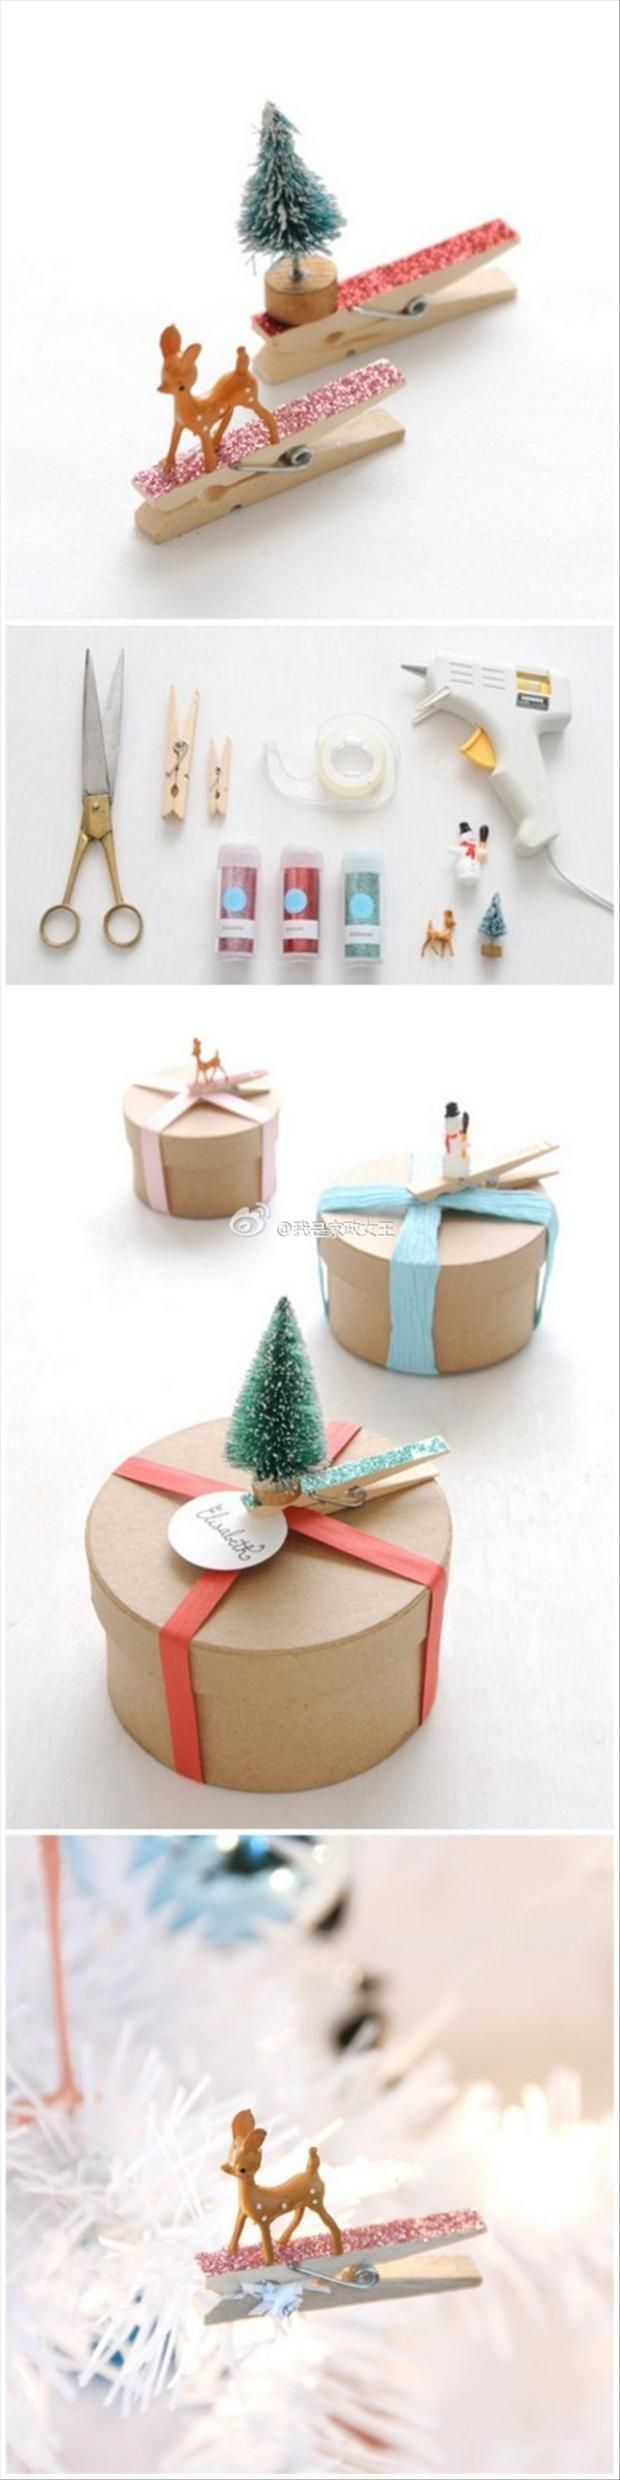 Adorable way to decorate gifts without going overboard or over budget!  these would be super cute with Close To My Heart embellies!